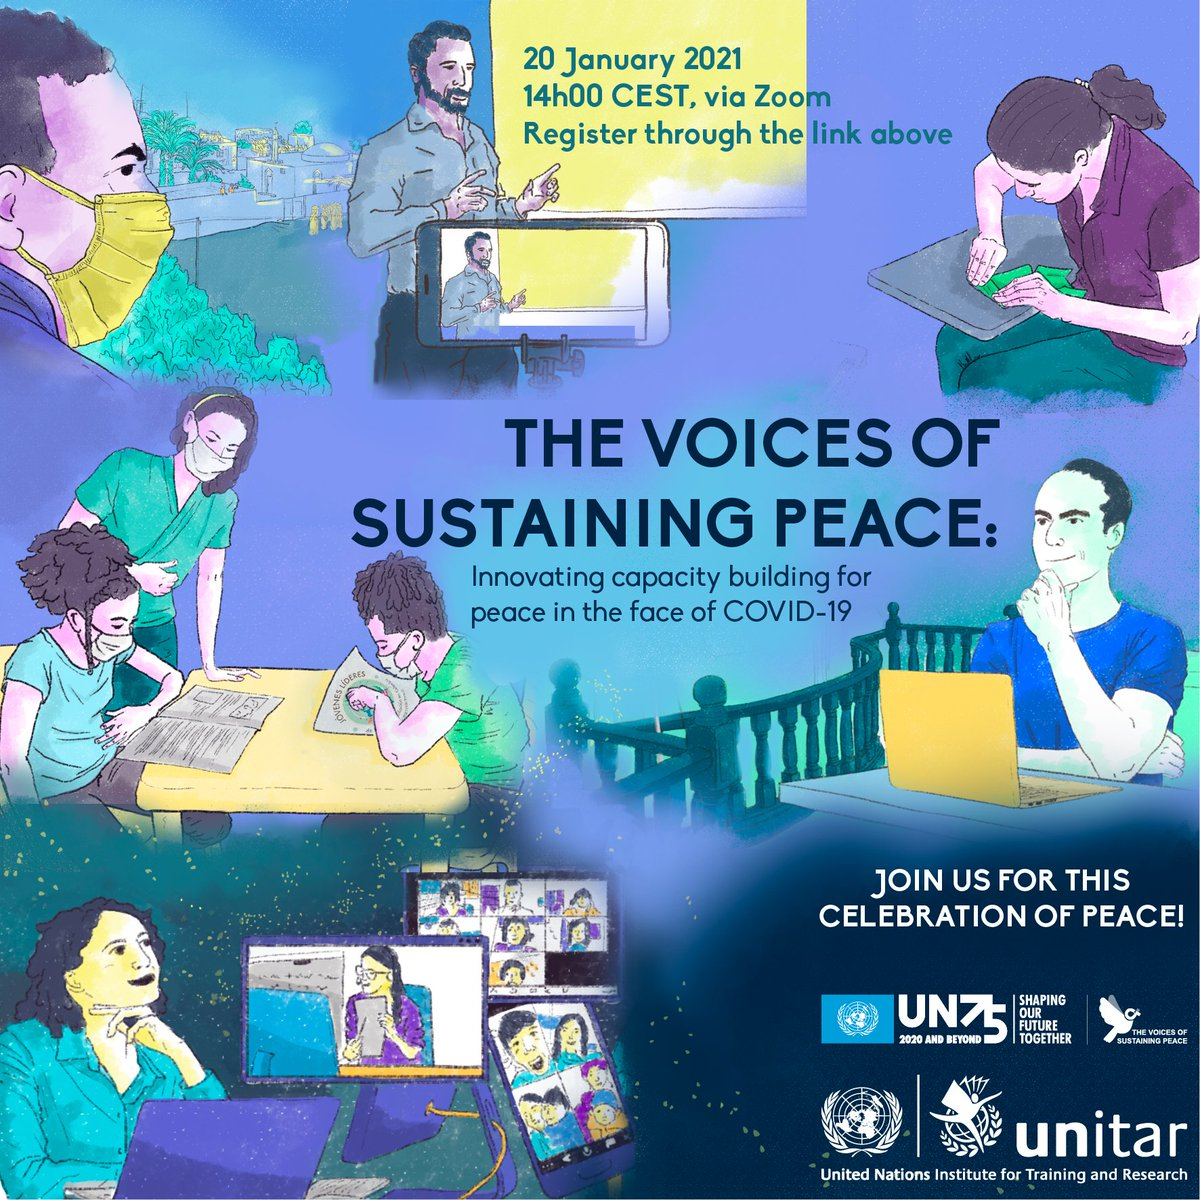 🕊️Join us this Wednesday to hear from @HochschildF @AlanCDoss @omeisy & other peacebuilders from all around the world about innovative approaches to sustaining #peace amid the ongoing #COVID19 pandemic.  Register now and add your voice to the debate👉